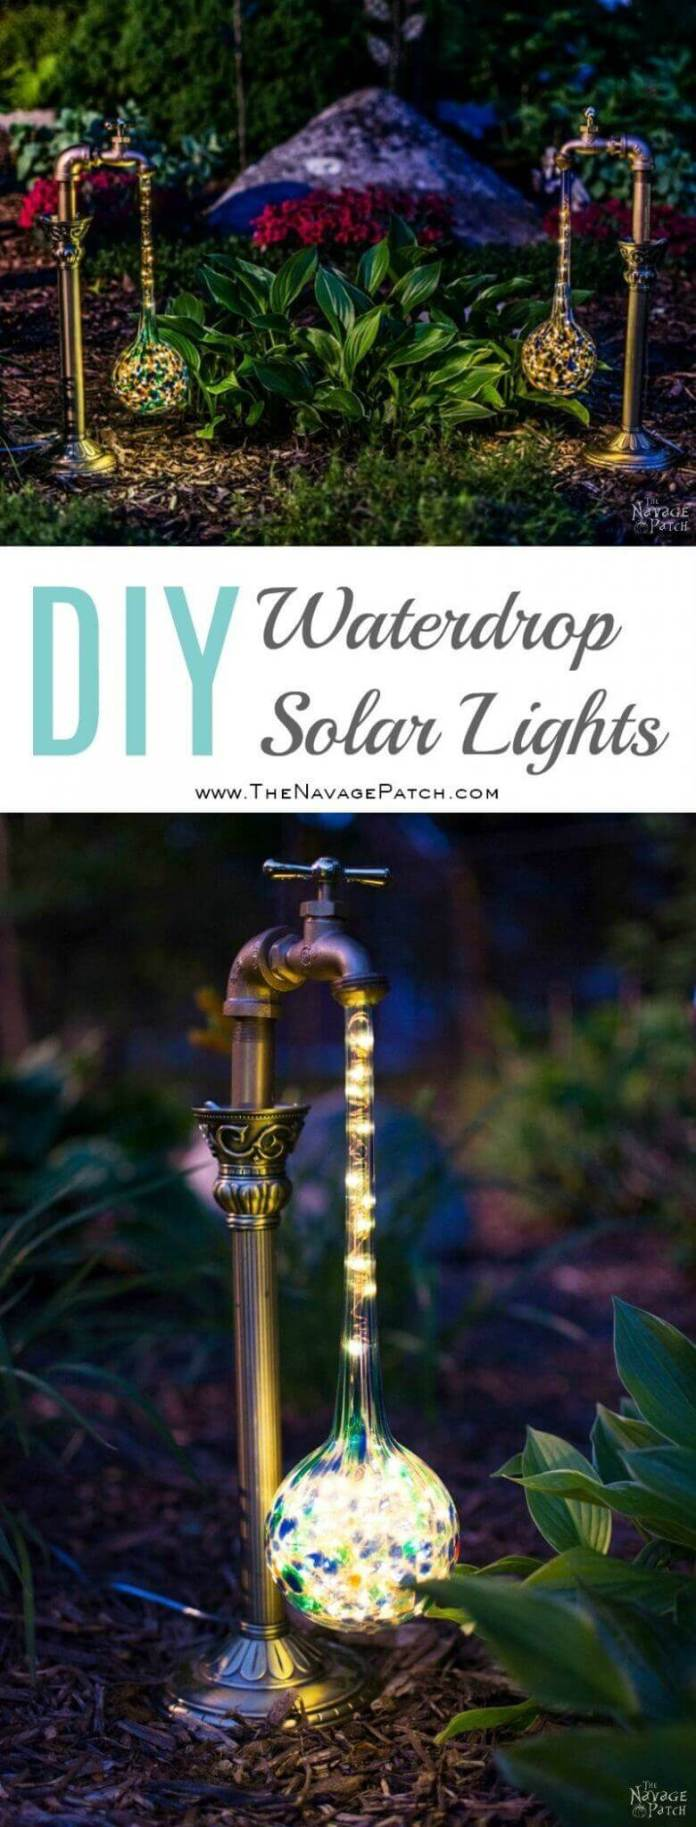 Light Up Your Garden with Water Drops